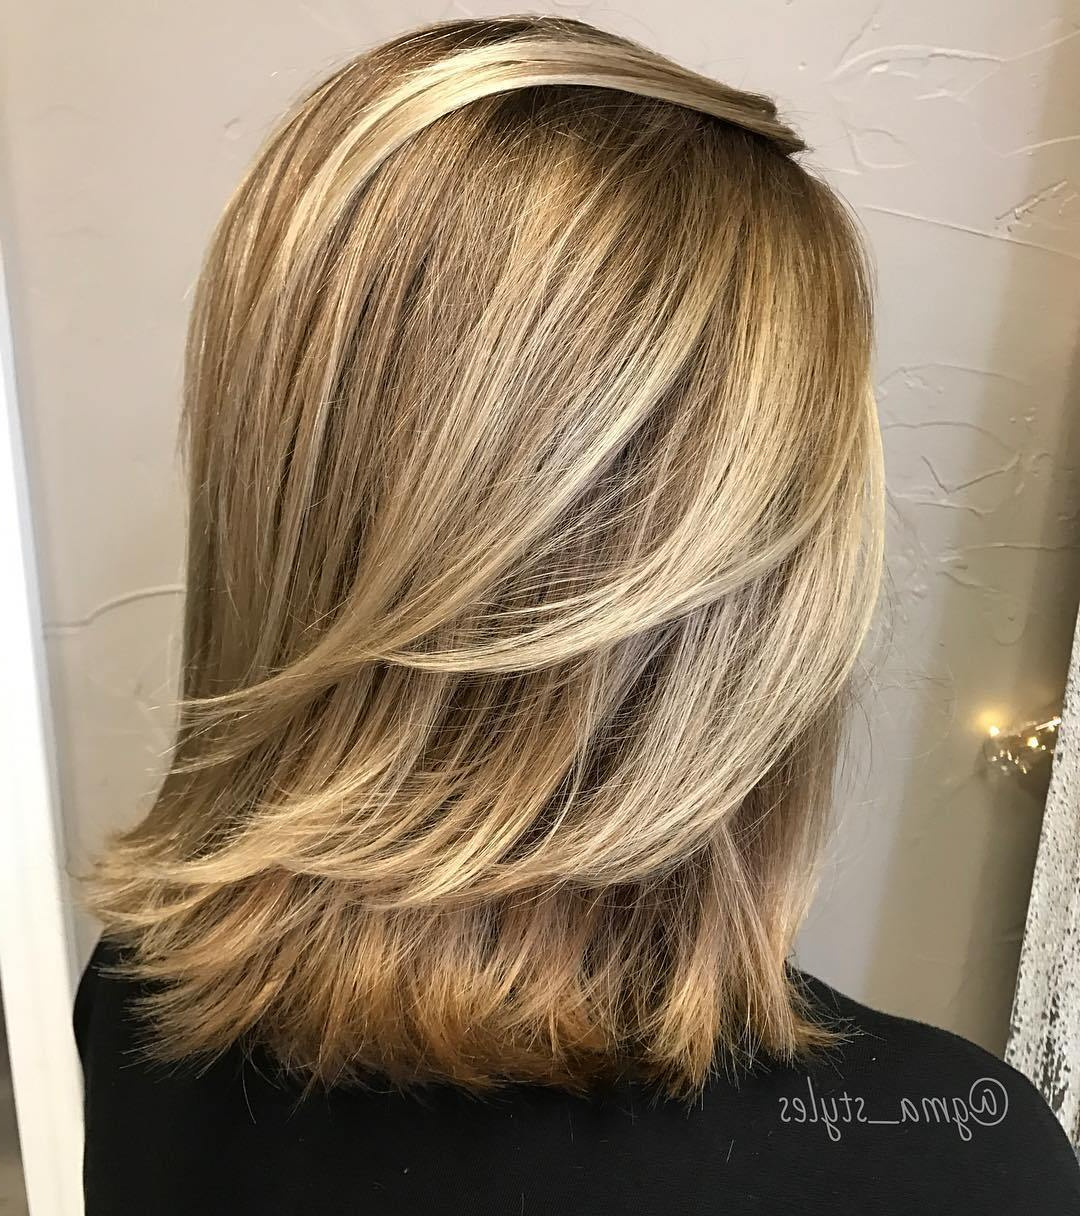 50 Fabulous Medium Length Layered Hairstyles – Hair Adviser In Golden Bronde Bob Hairstyles With Piecey Layers (View 8 of 20)